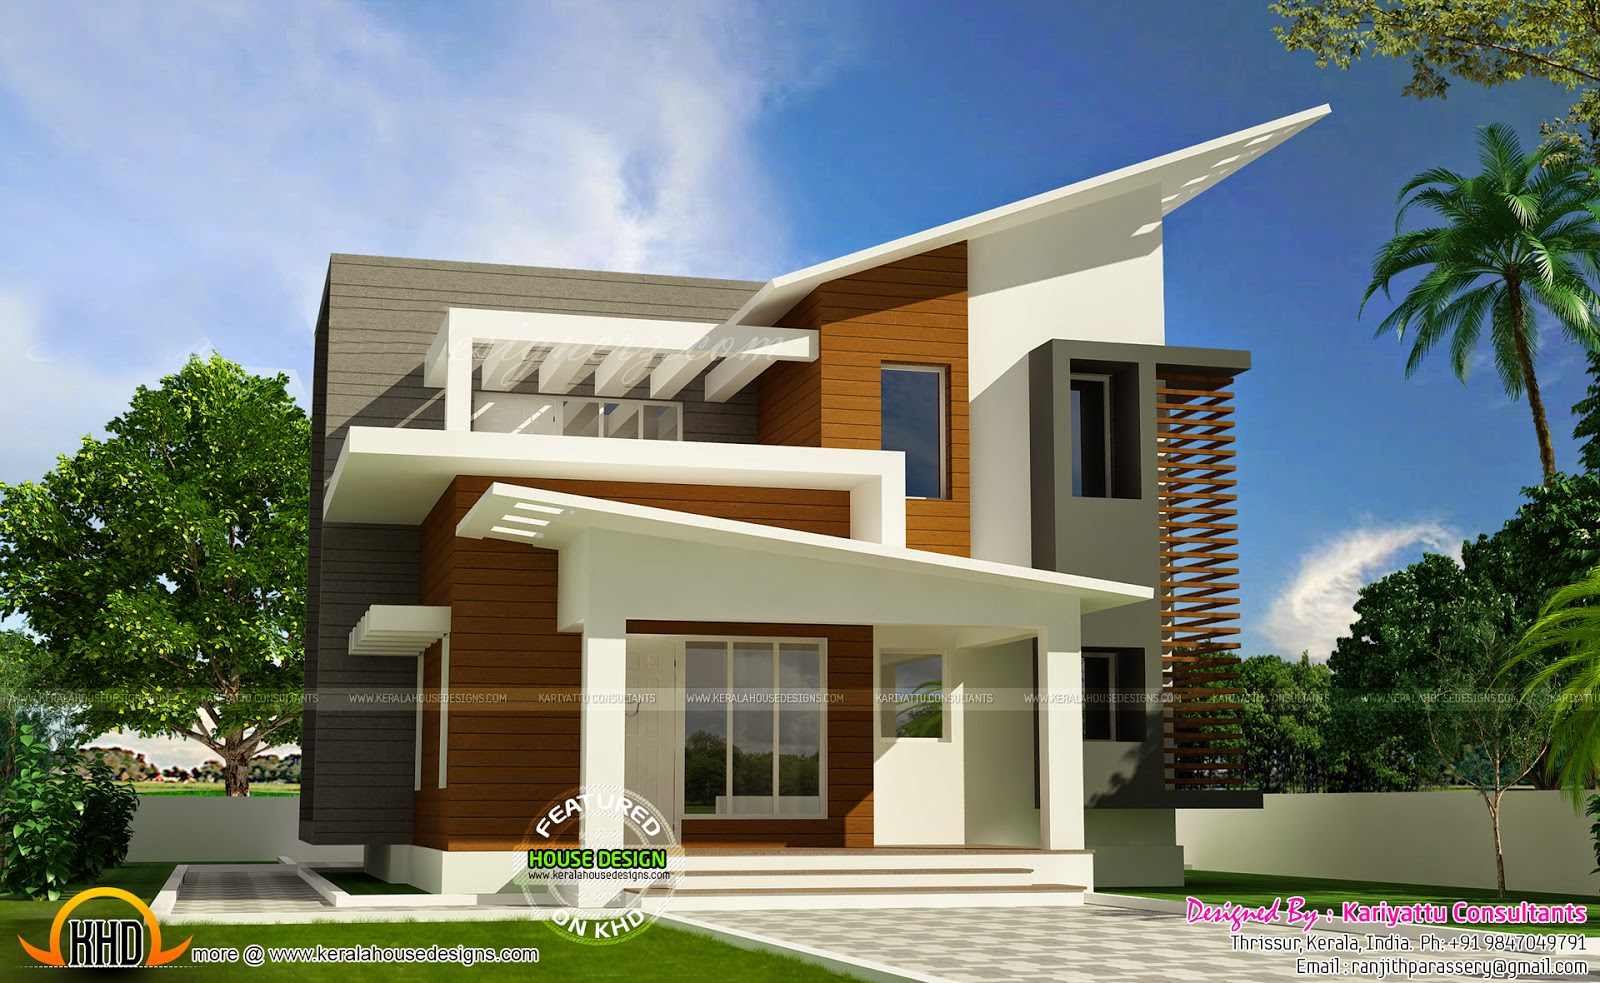 the gallery for vanitha veedu plans contemporary house